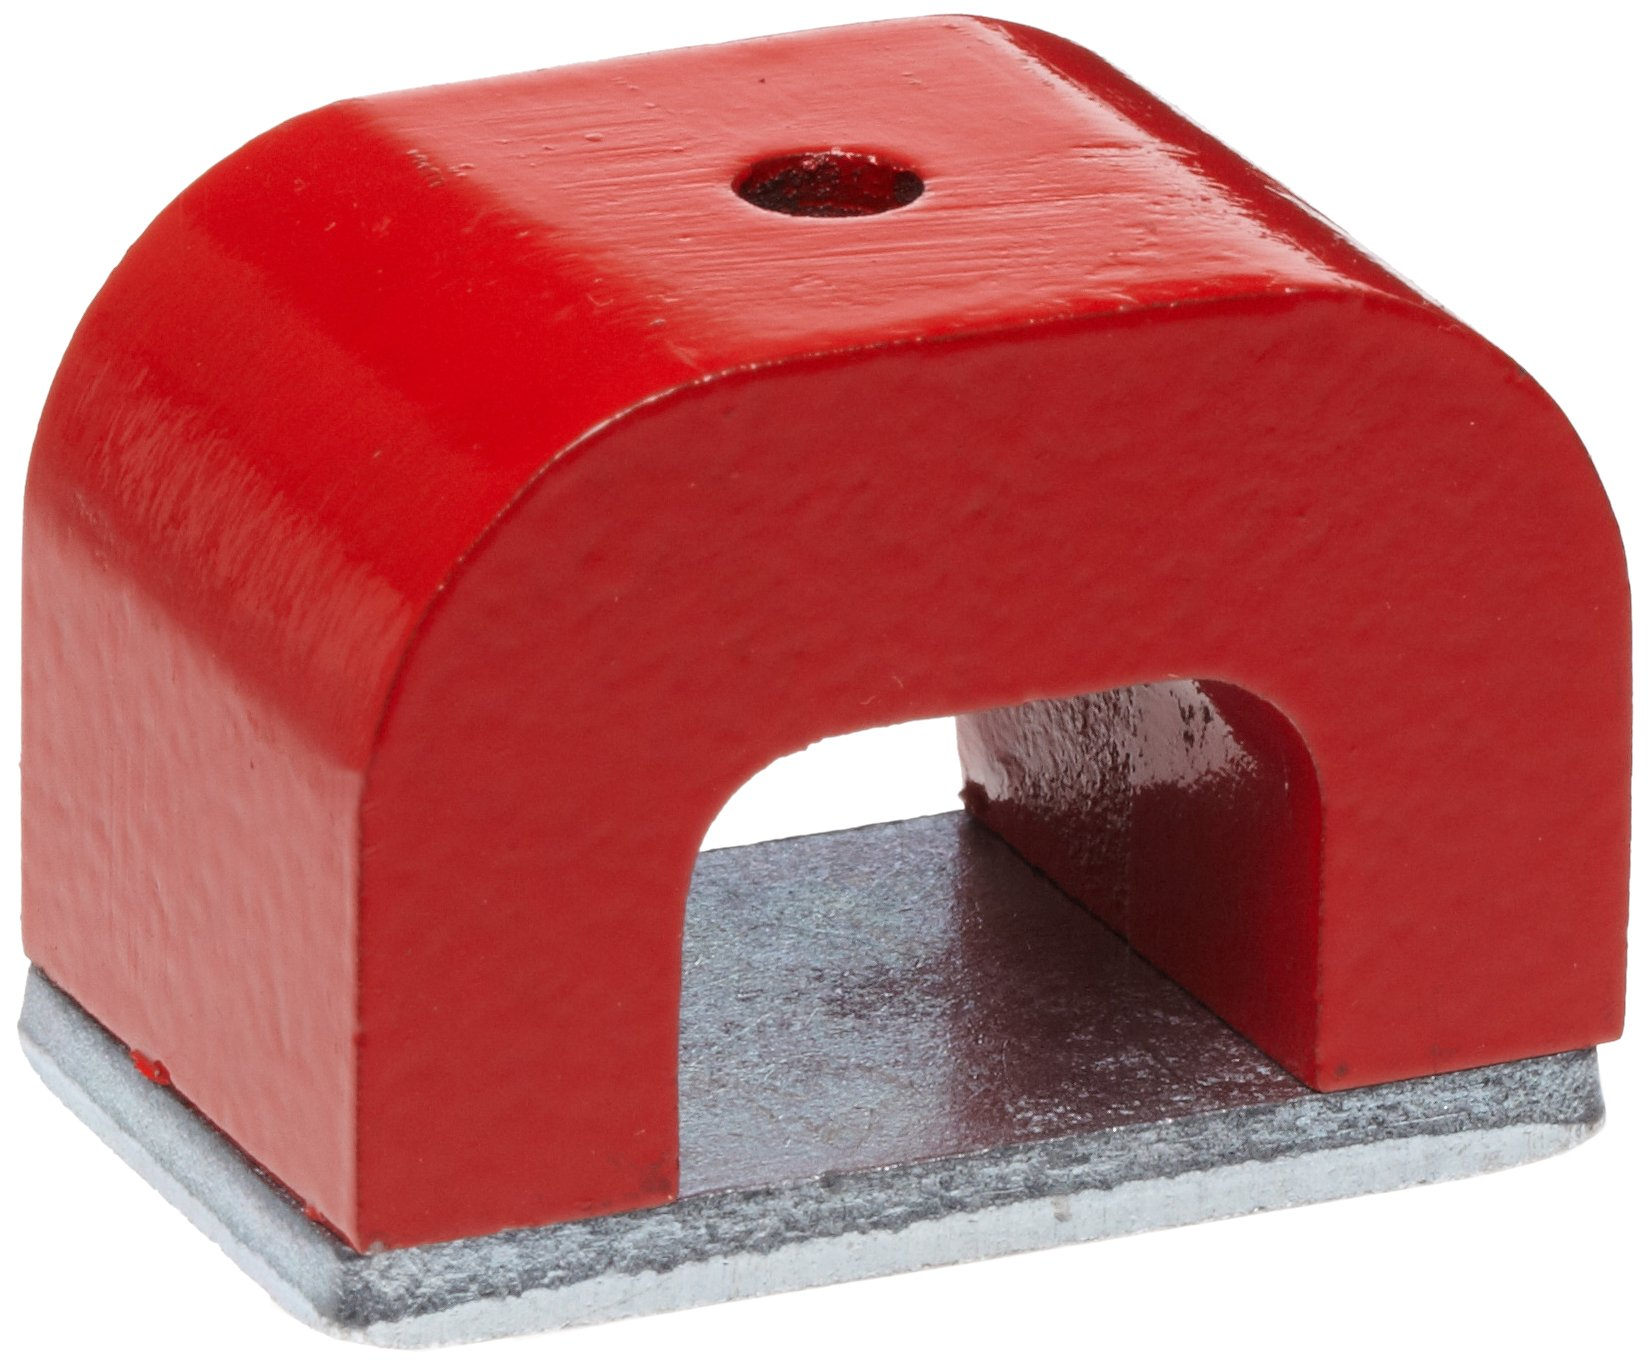 Red Cast Alnico 5 Bridge Magnet With Keeper, 1.57'' Wide, 1'' High, 1'' Thick, 0.20'' Hole On Top (Pack of 1)